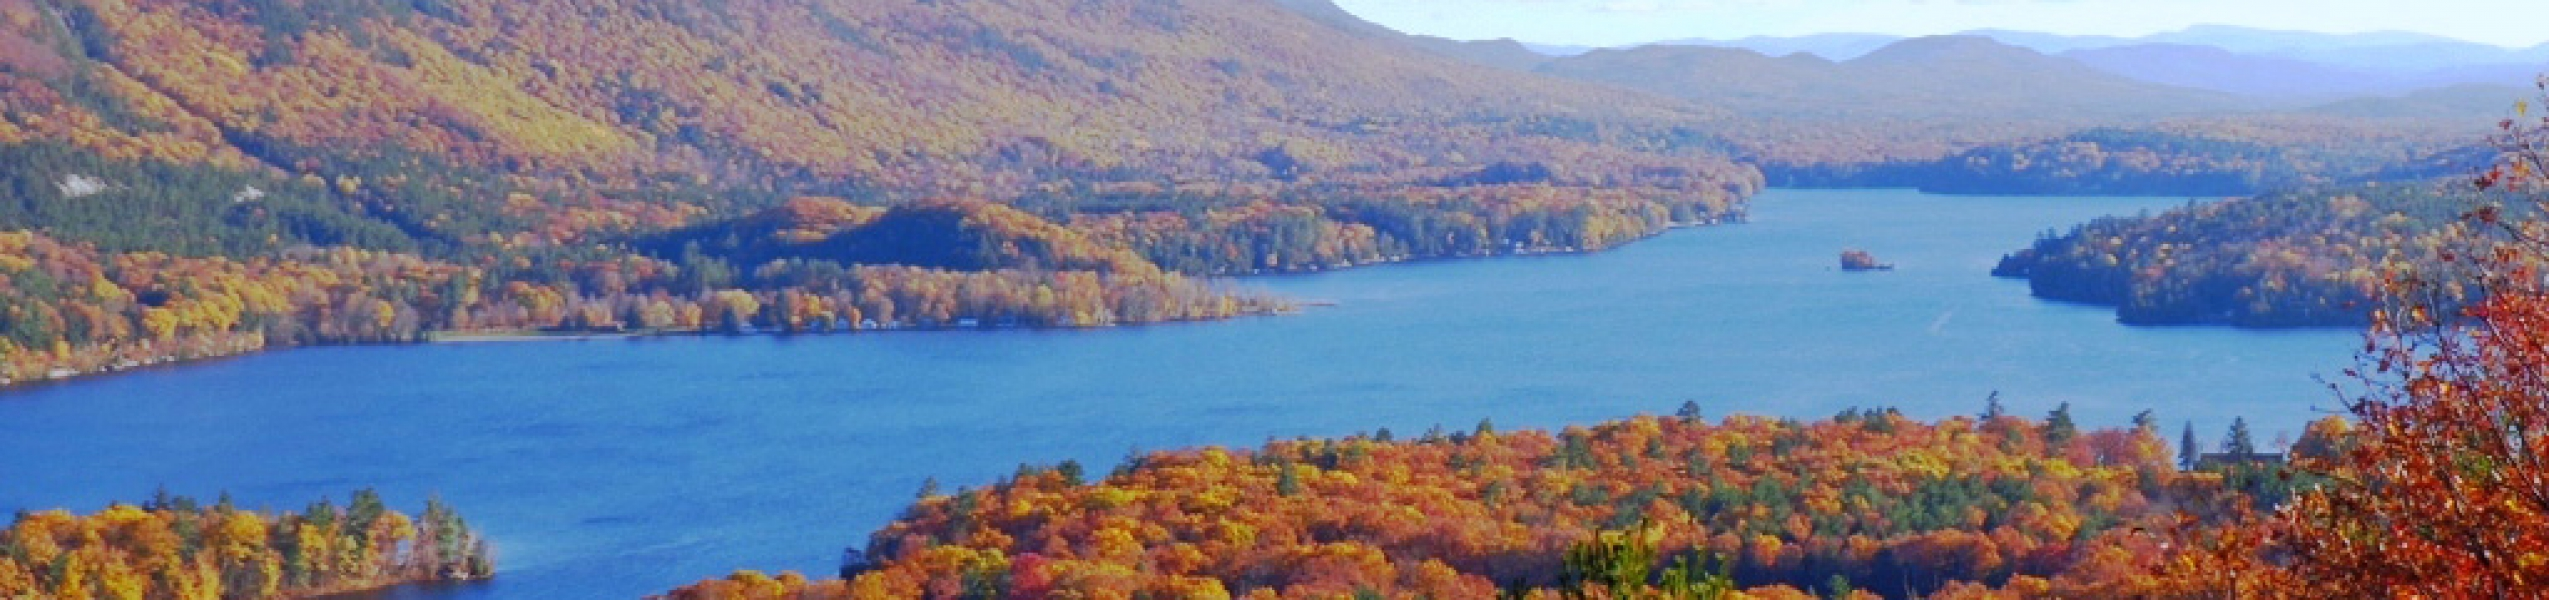 october-view-lake-dunmore-cropped